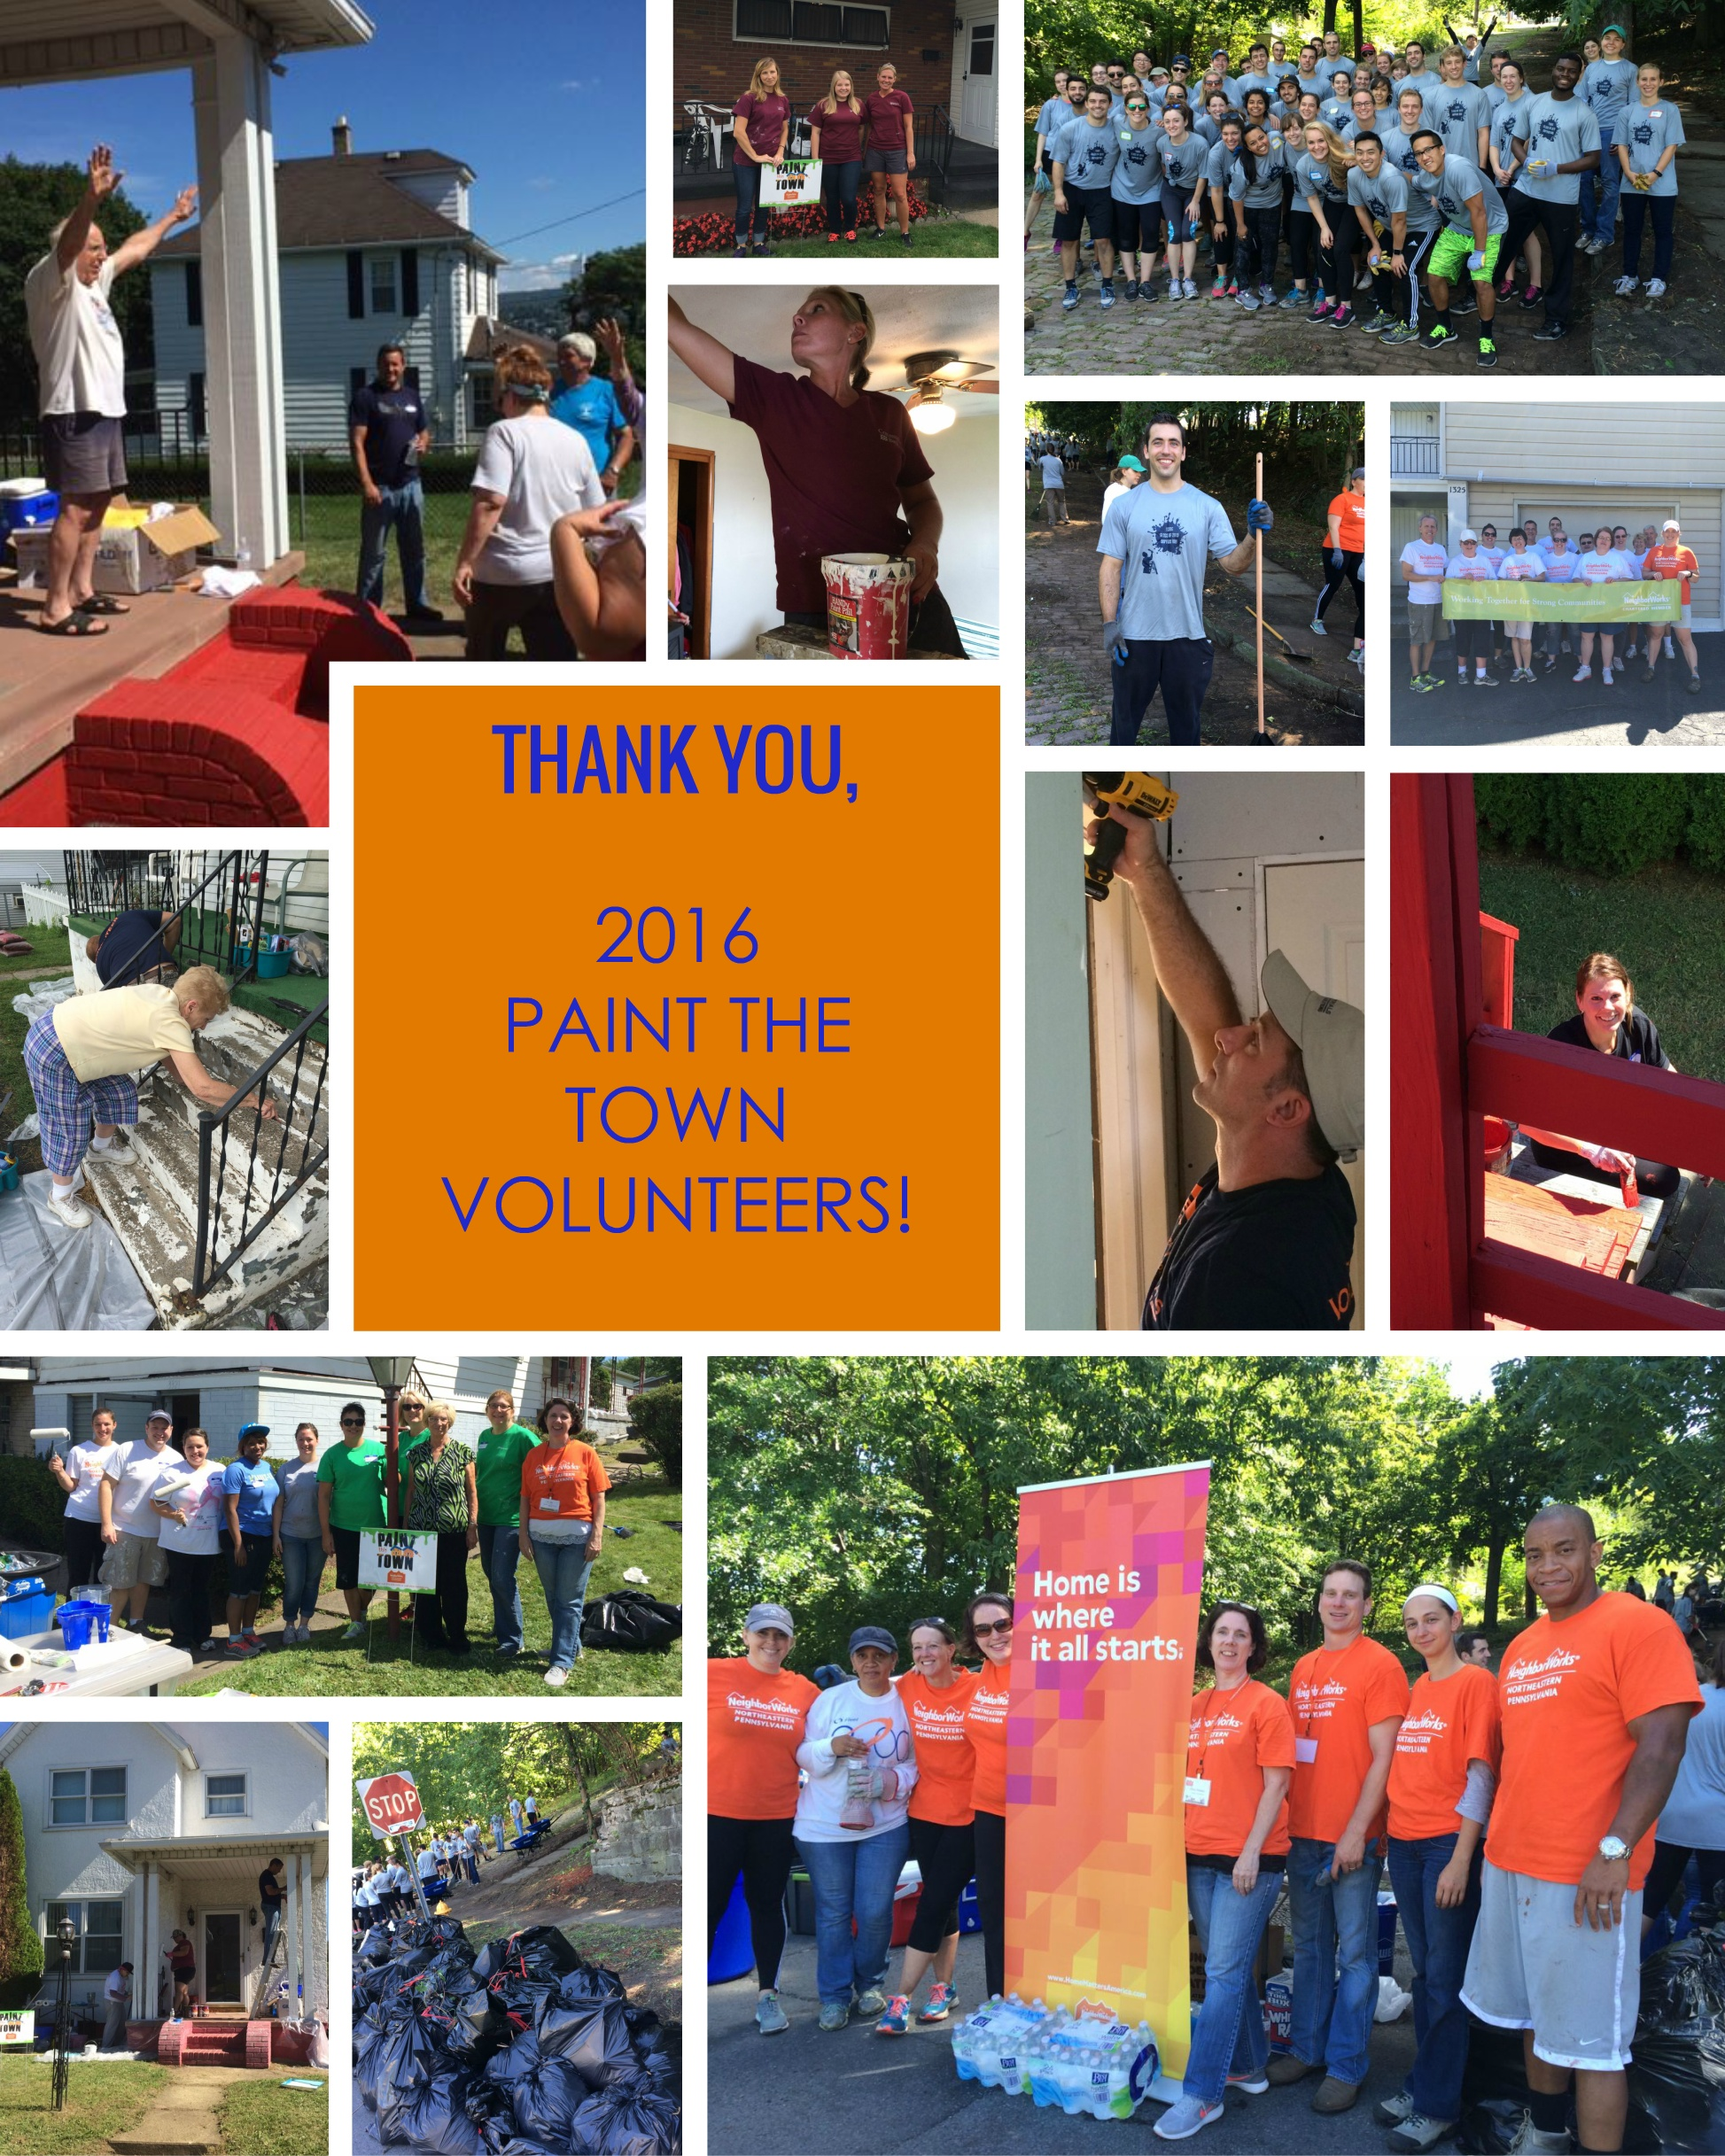 Paint The Town 2016 a neighborly community success